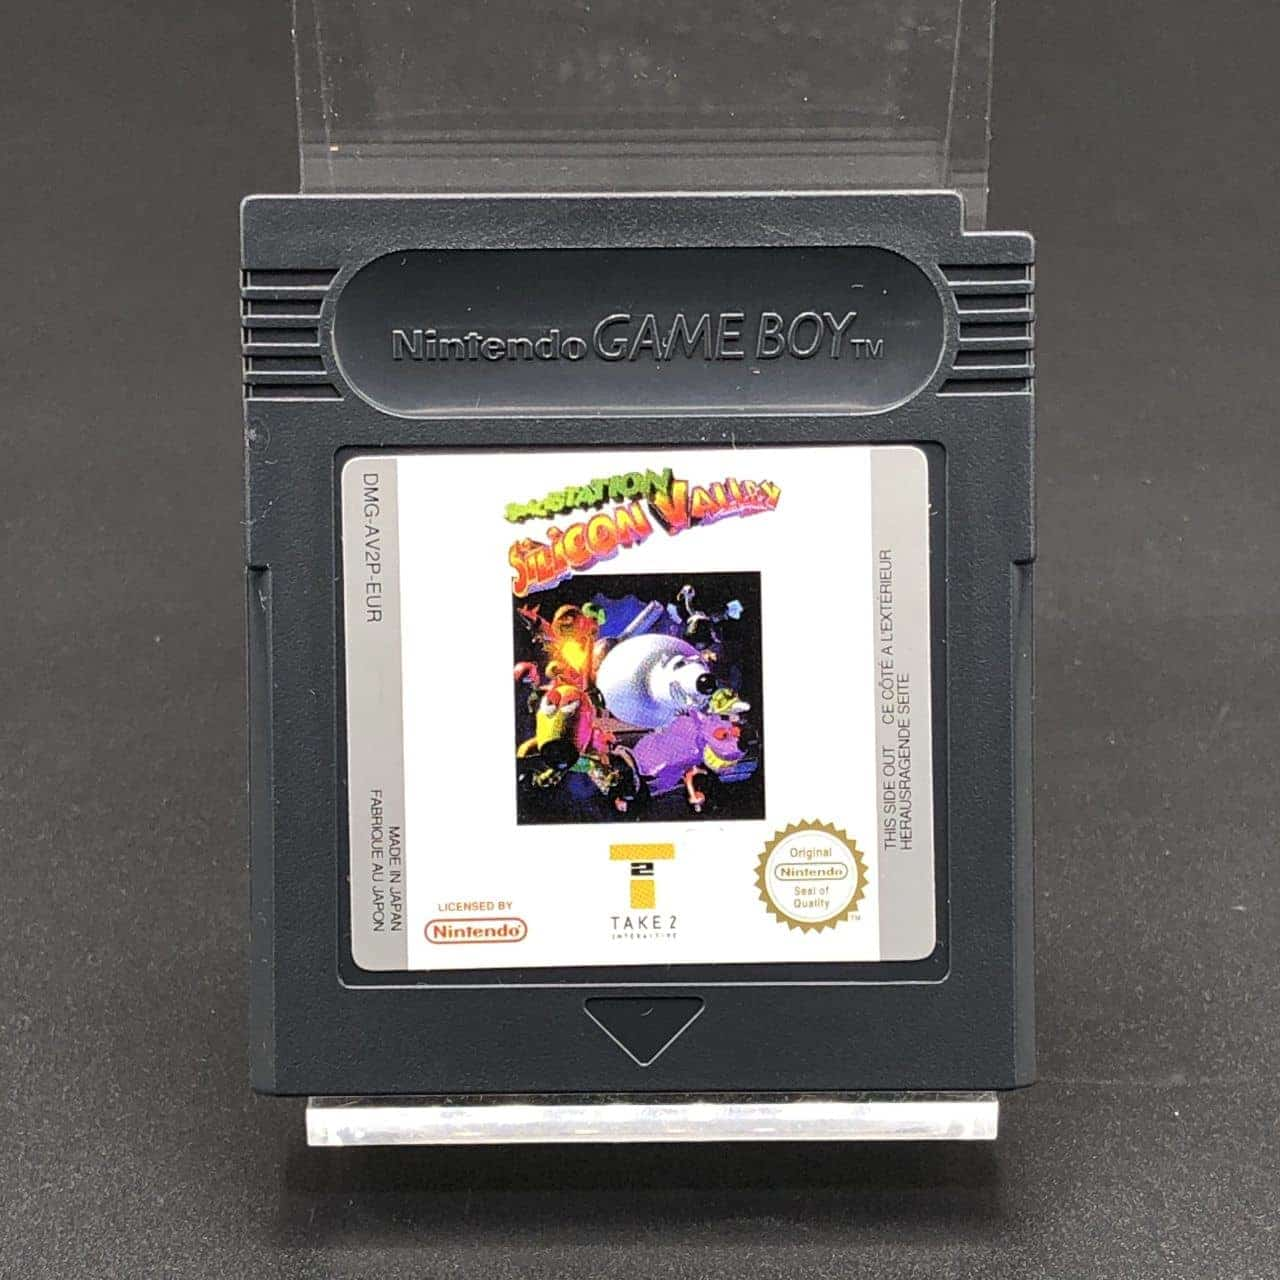 GBC Space Station Silicon Valley (Modul) (Sehr gut) Nintendo Game Boy Color